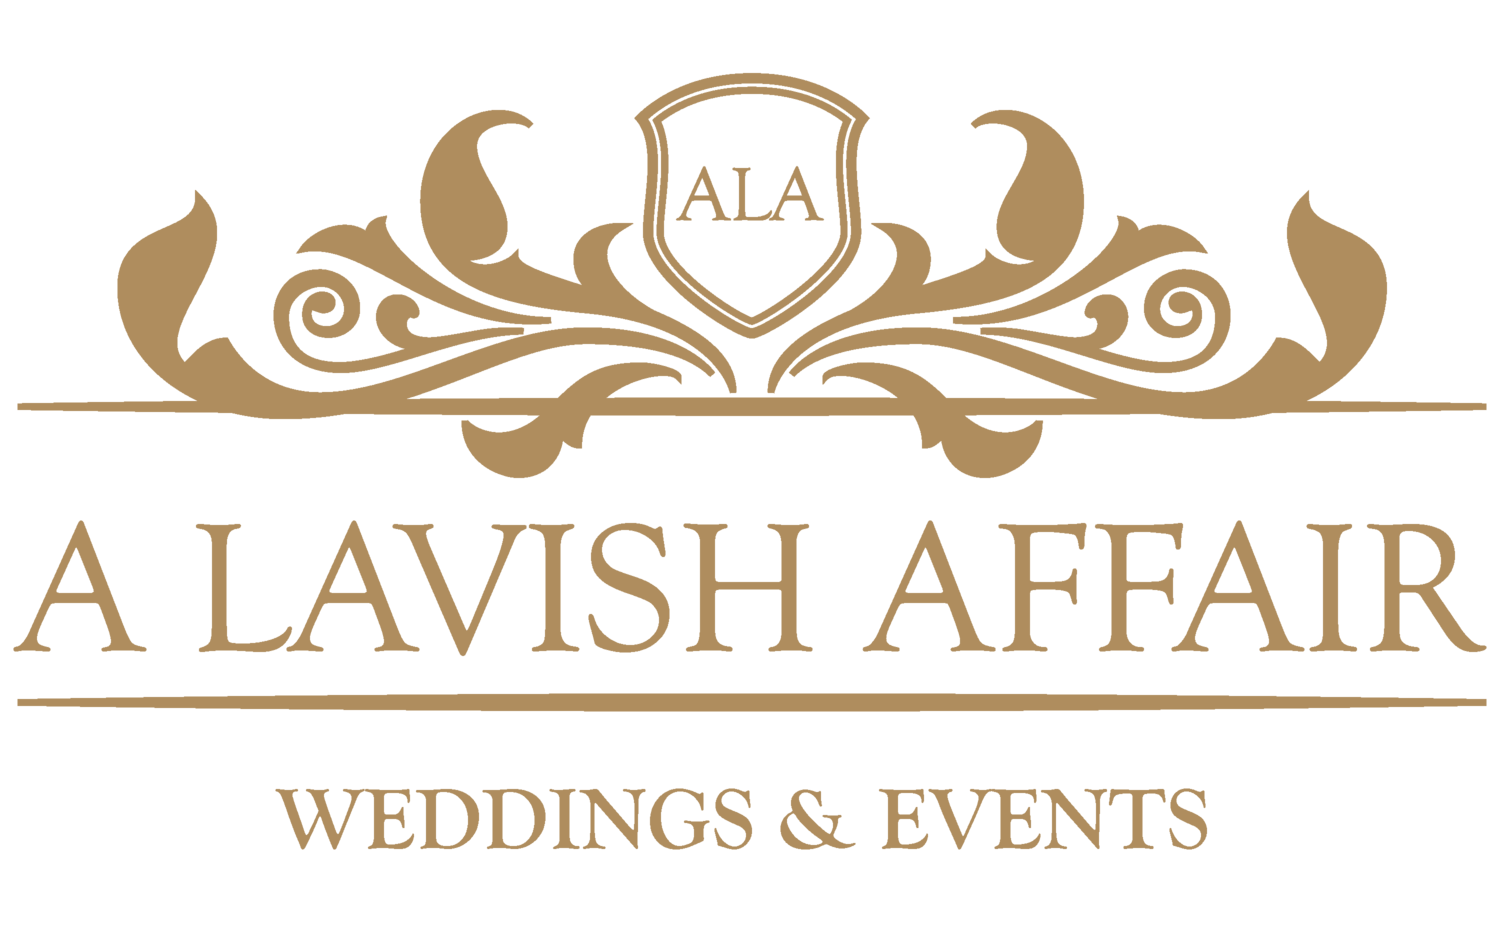 A Lavish Affair